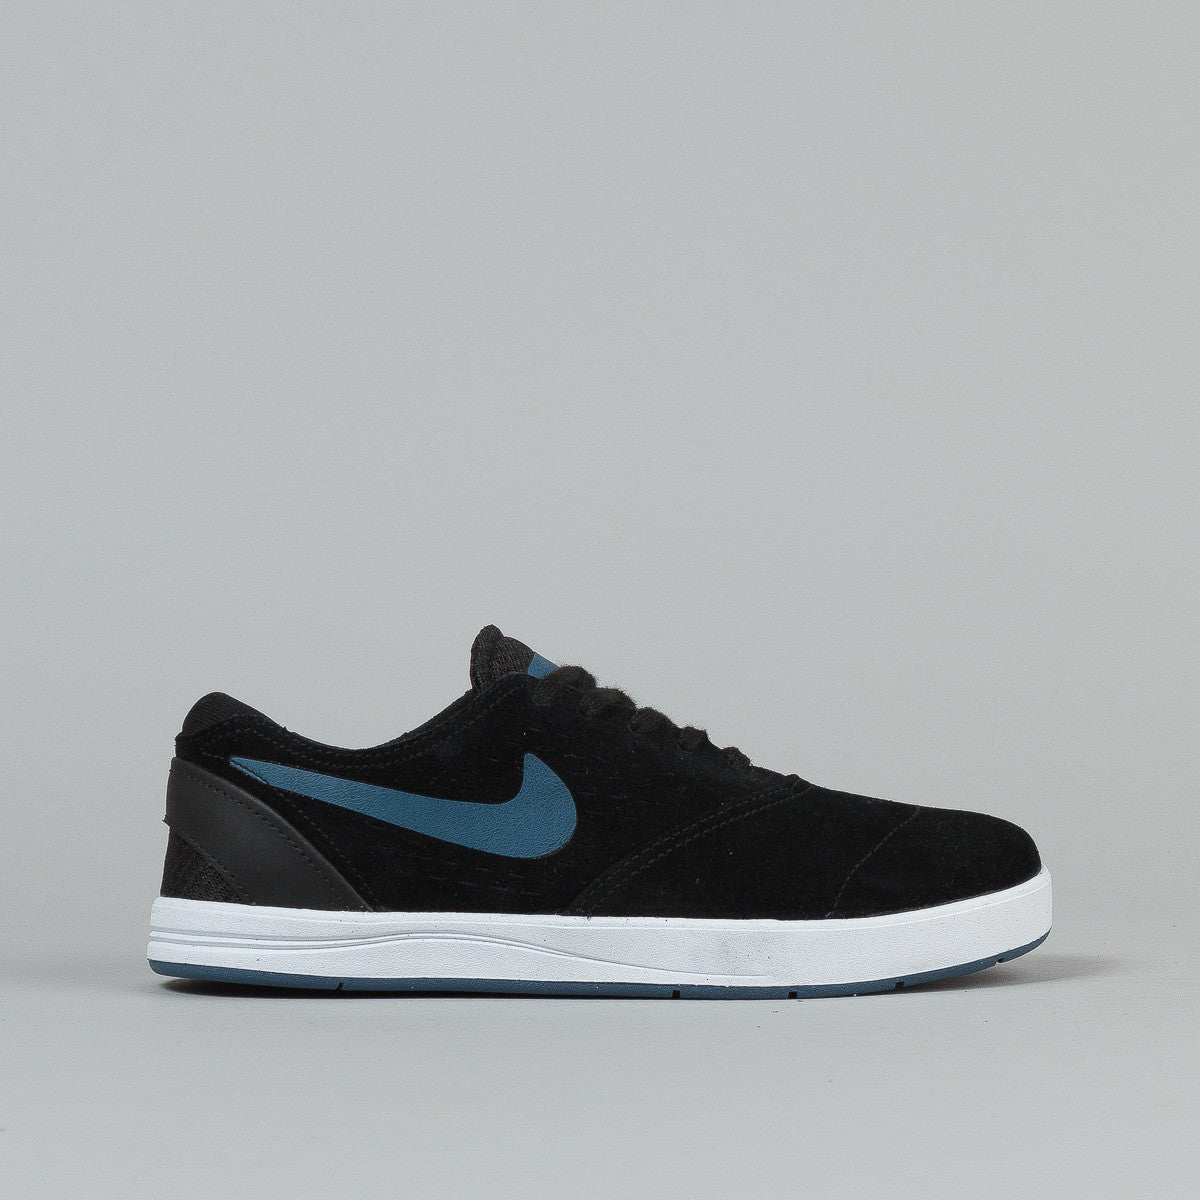 Nike SB Eric Koston 2 Black / New Slate